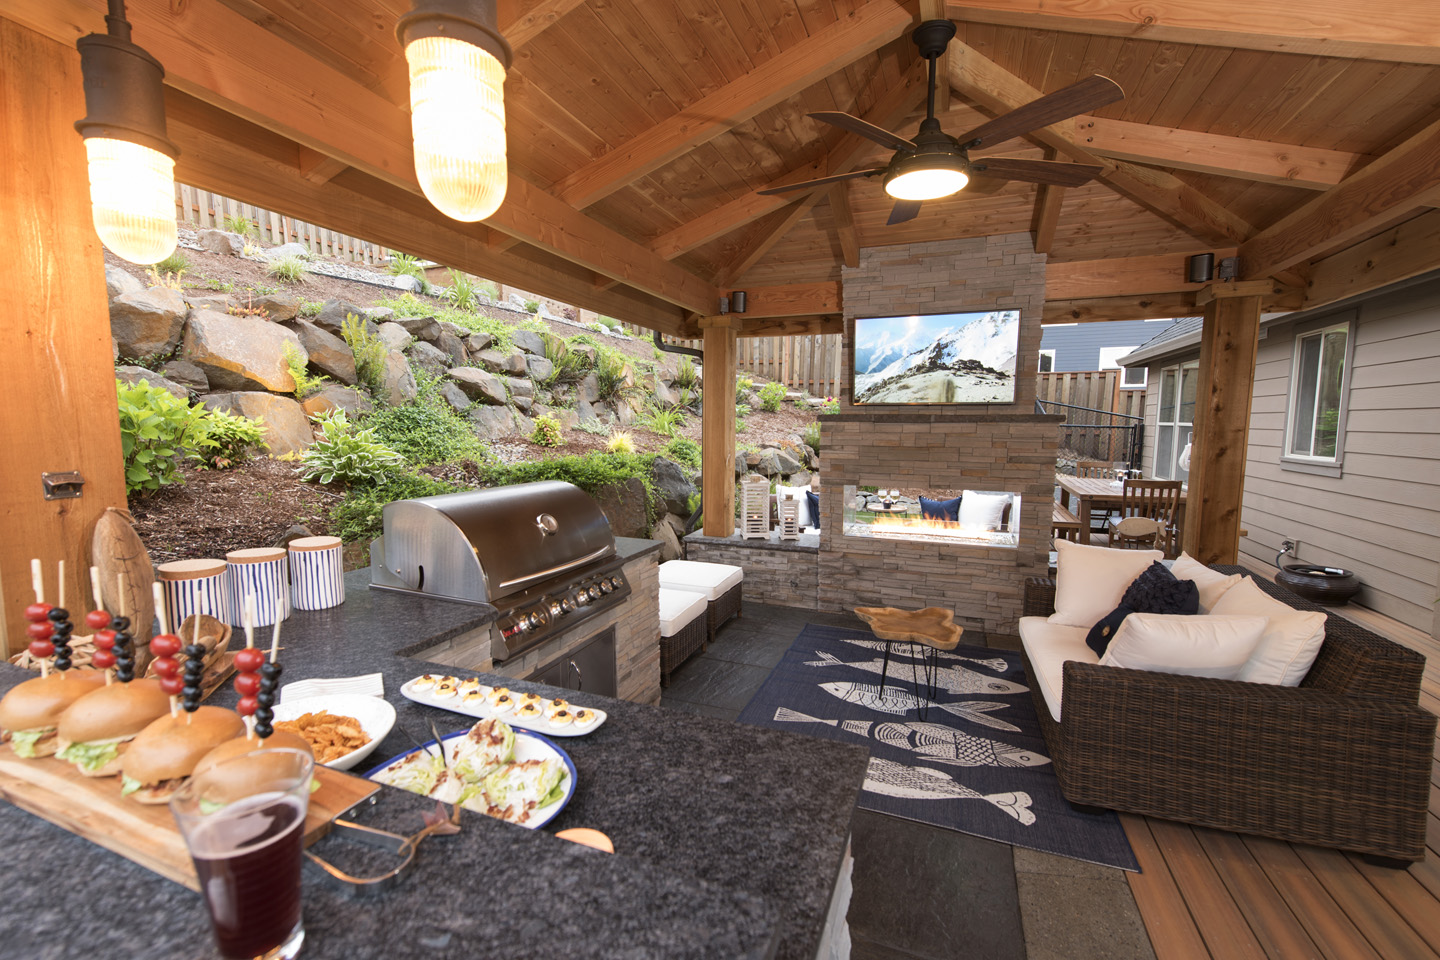 Outdoor Living Space Design outdoor living spaces - paradise restored landscaping